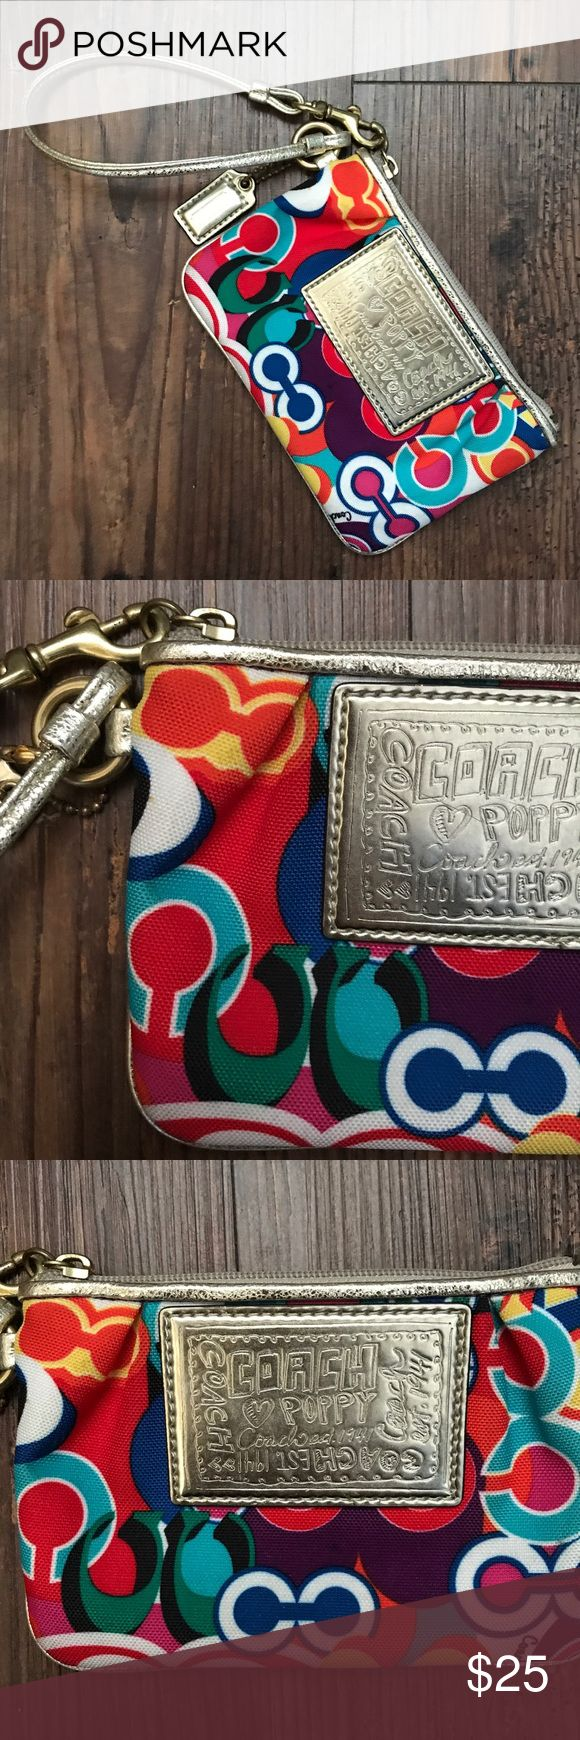 COACH POPPY WRISTLET Coach poppy wristlet  - Vibrant colored Coach wristlet  - Has Coach ID tag - All gold hardware - Some wear and scratches from use (not noticeable) - A few stains - pictured  *open to reasonable offers* Coach Bags Clutches & Wristlets